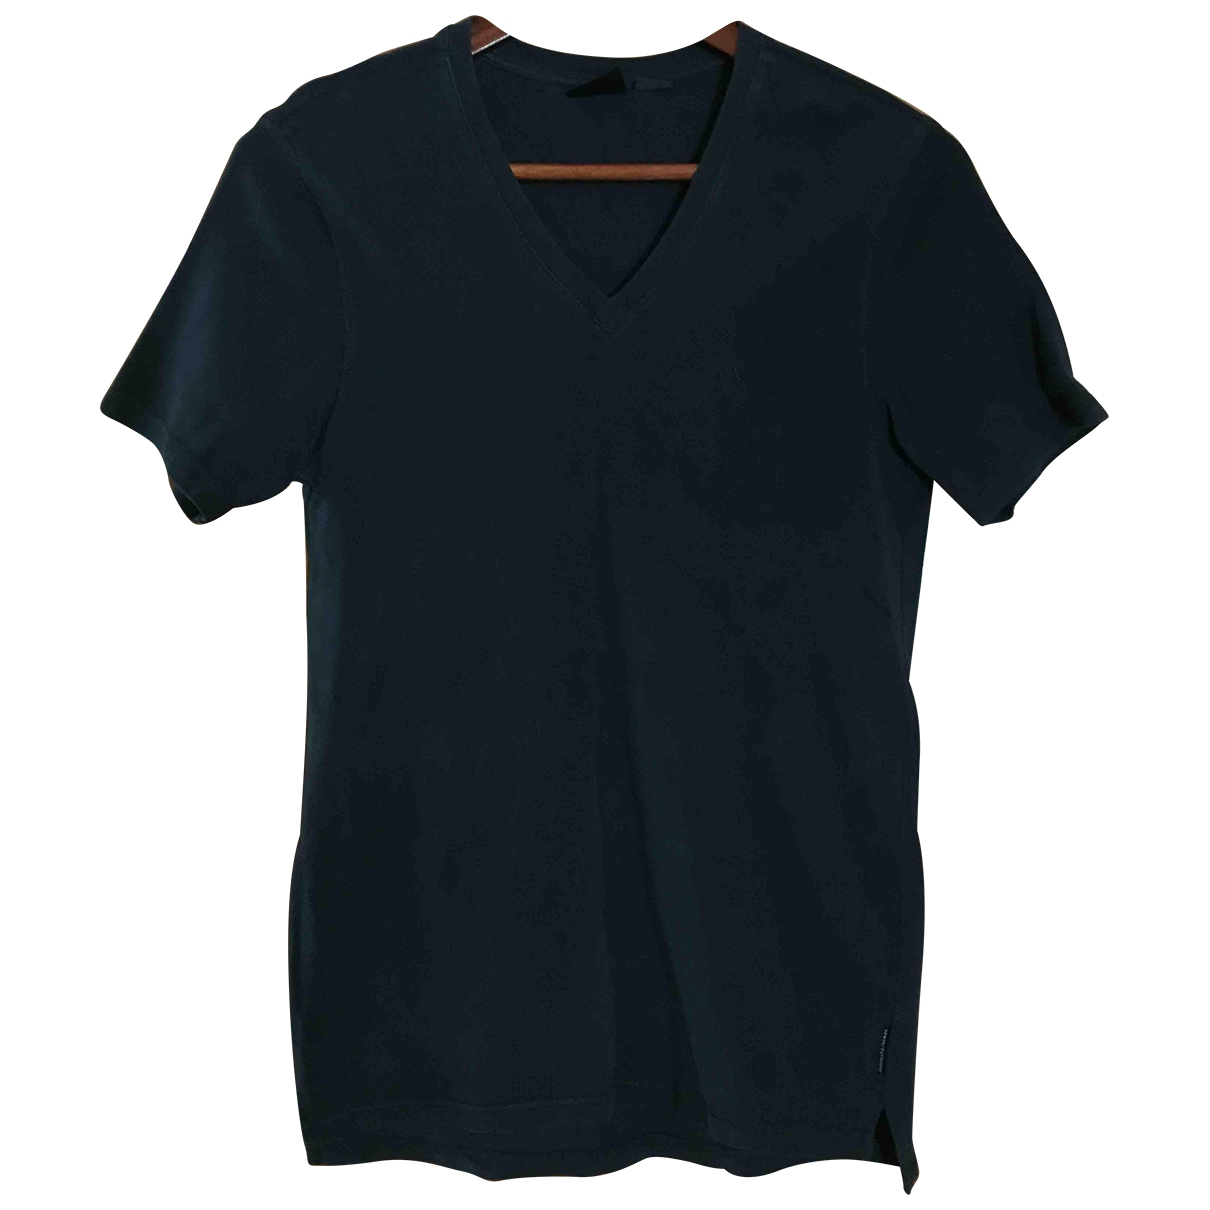 Emporio Armani \N Navy Cotton Shirts for Men XS International